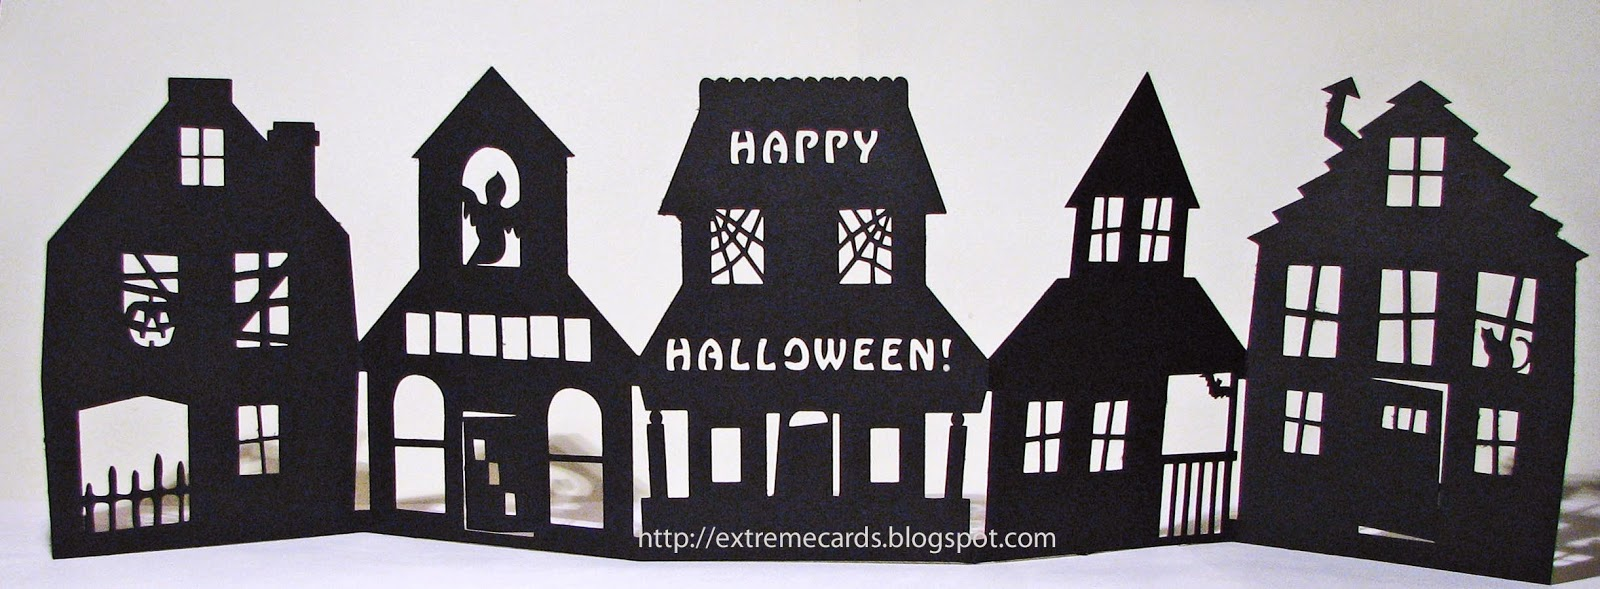 How To Make An Accordion Of Haunted Houses